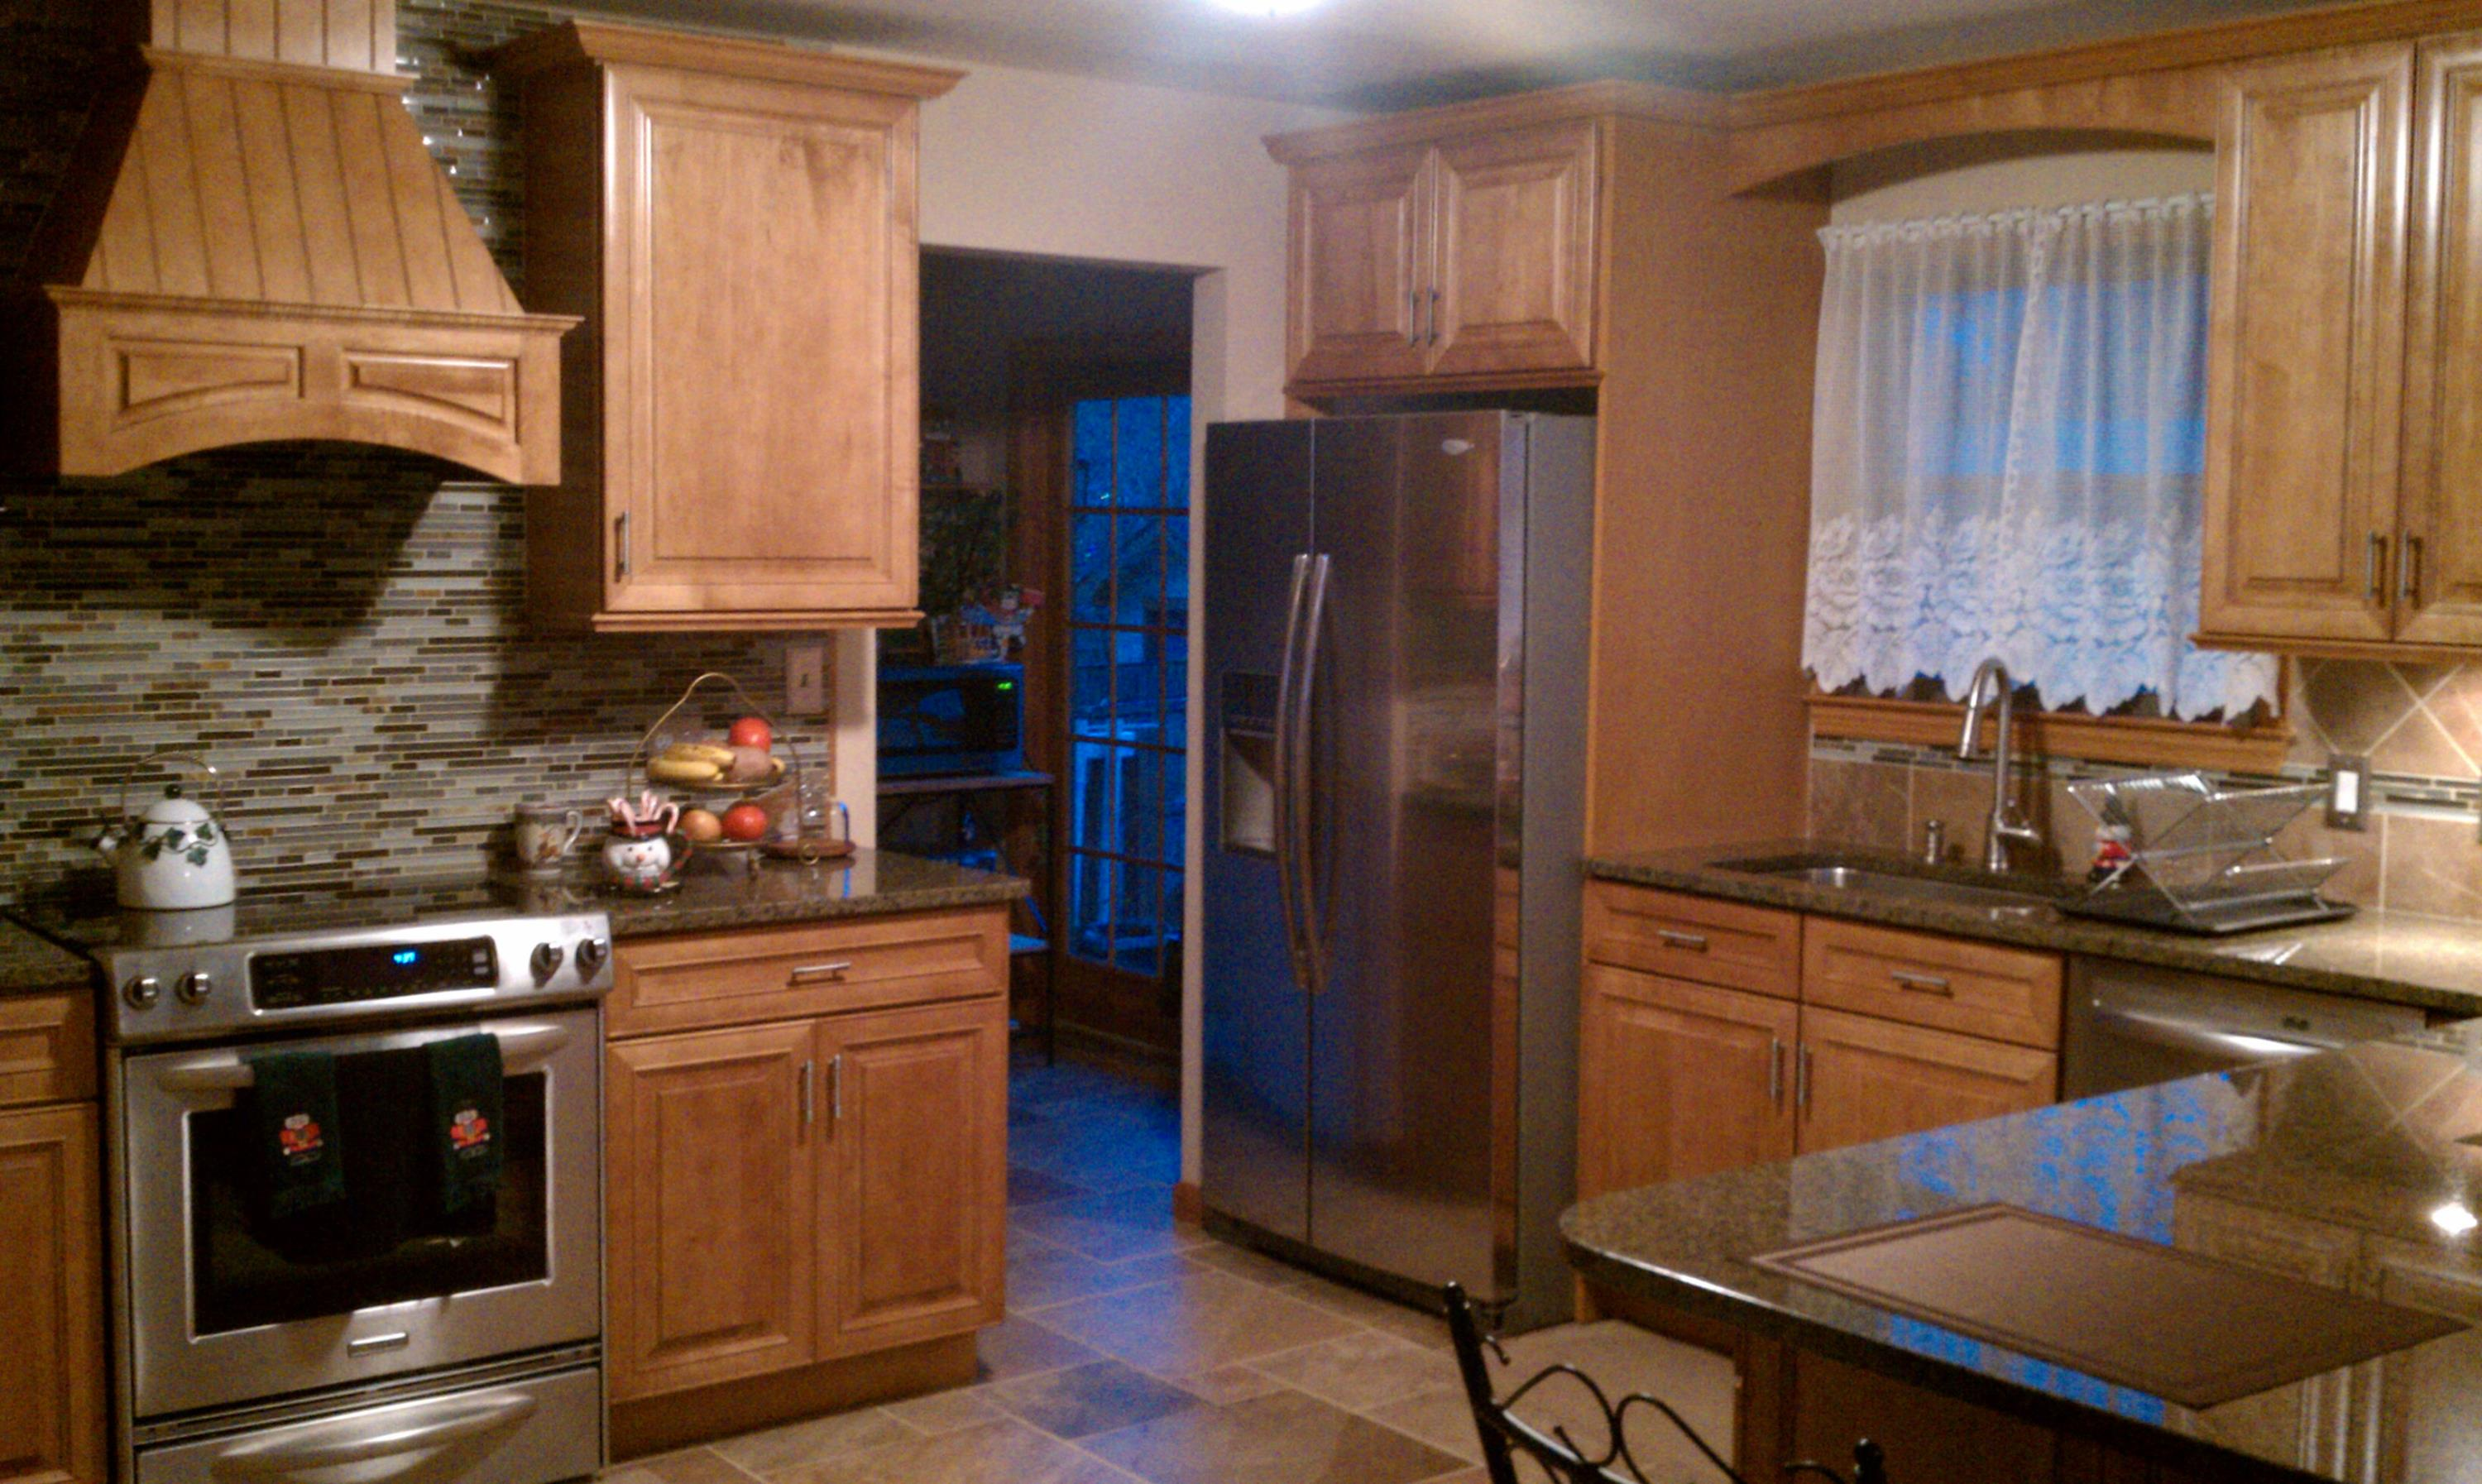 Beautiful When In Need Of Kitchen Remodeling U0026 Kitchen Renovation Services On Long  Island, The Talented Experts At Straight Line Construction Are There To  Answer The ...